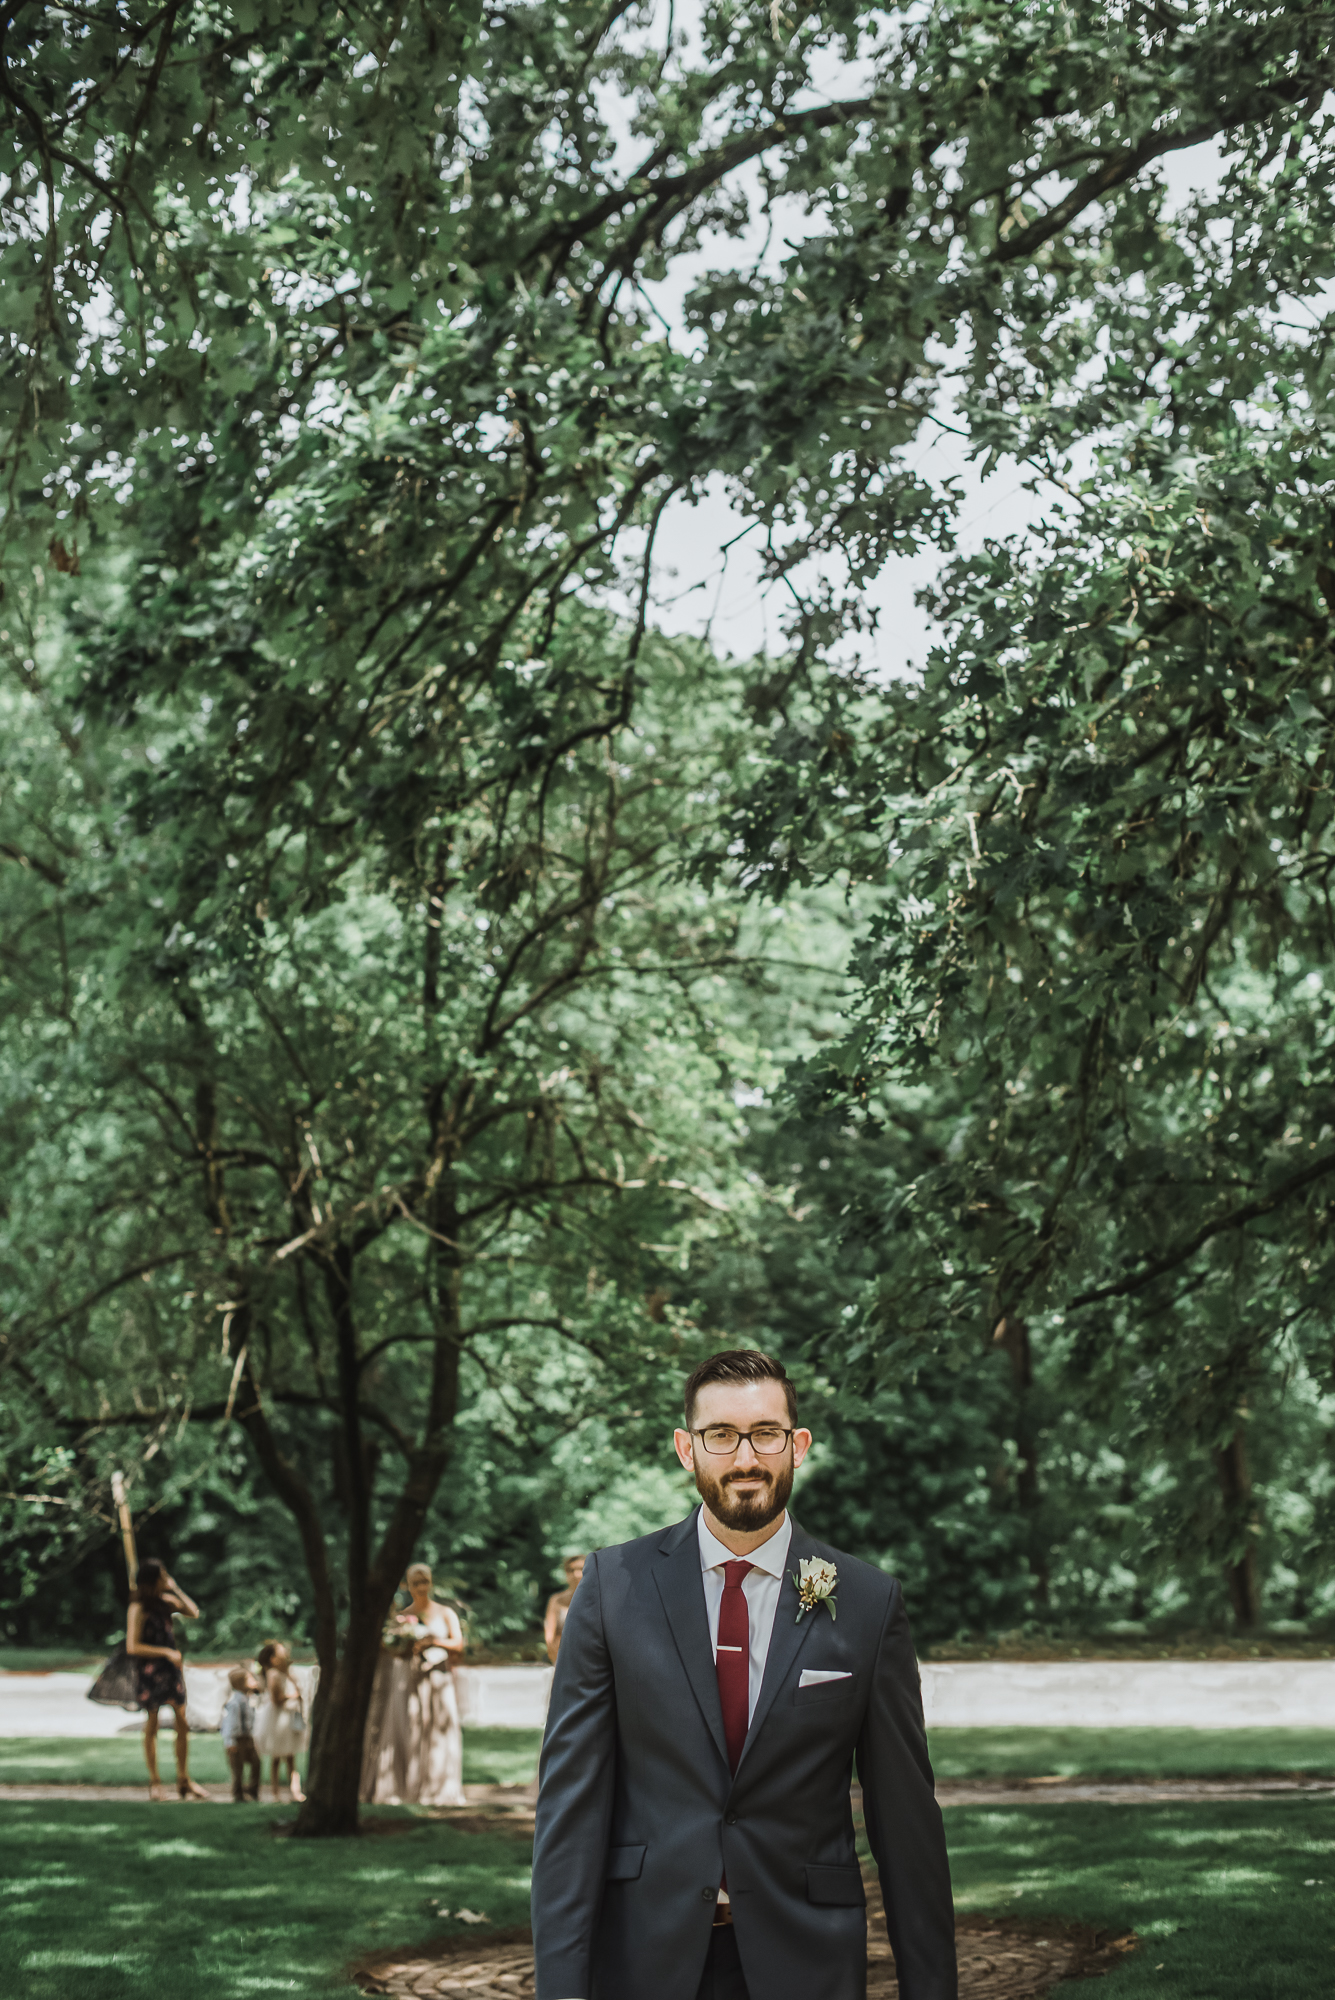 Melissa Cervantes Photography _ Kelsey + Ben Junebug Weddings Submission-45a.jpg